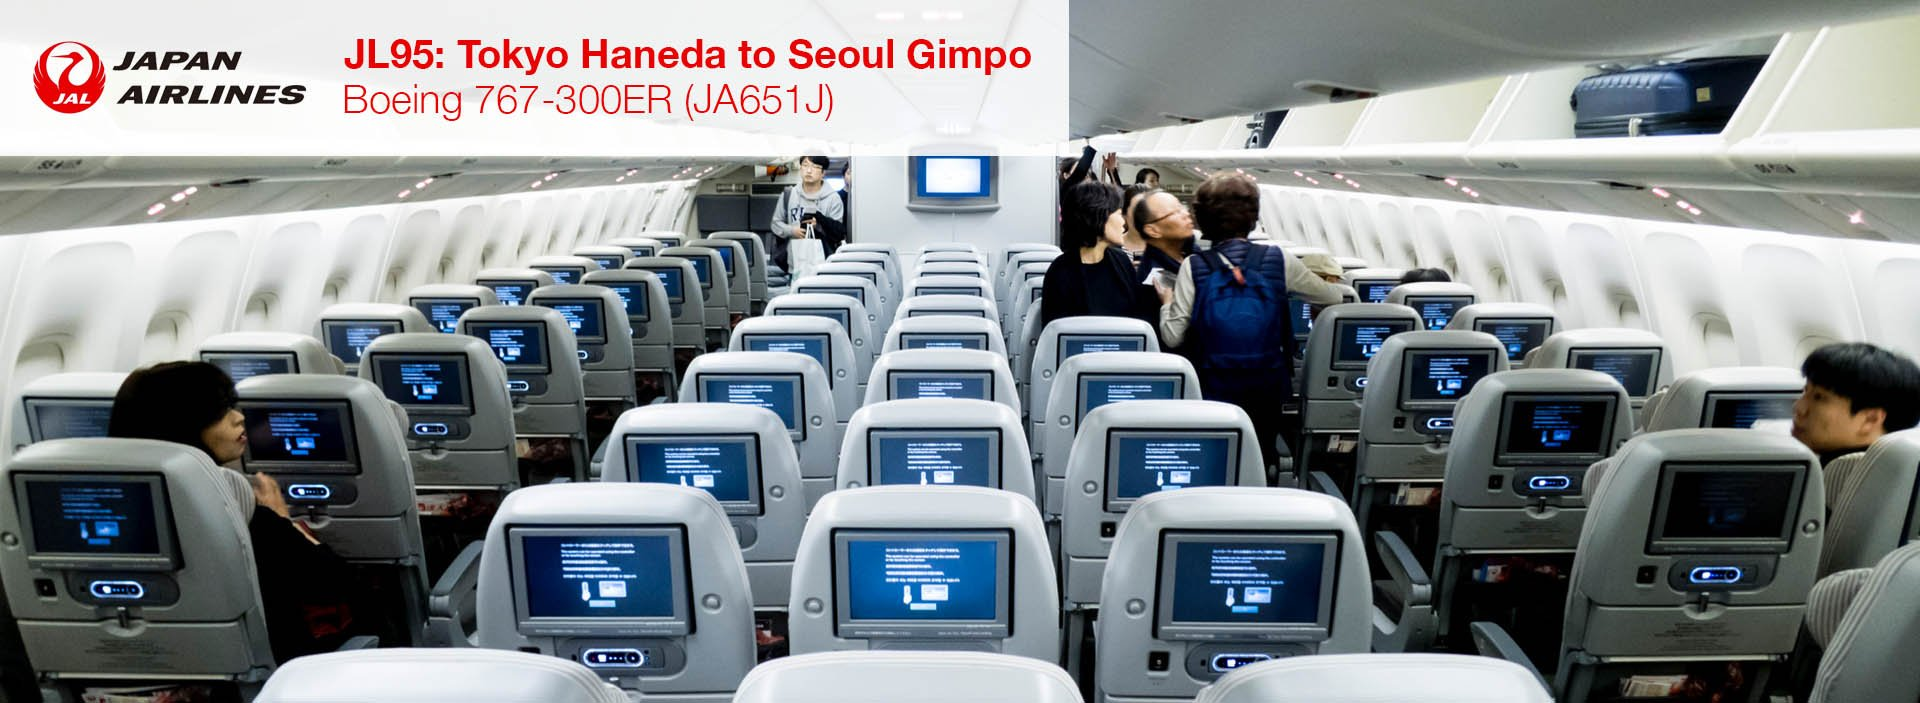 Review: JAL 767-300ER Economy Class from Tokyo HND to Seoul Gimpo